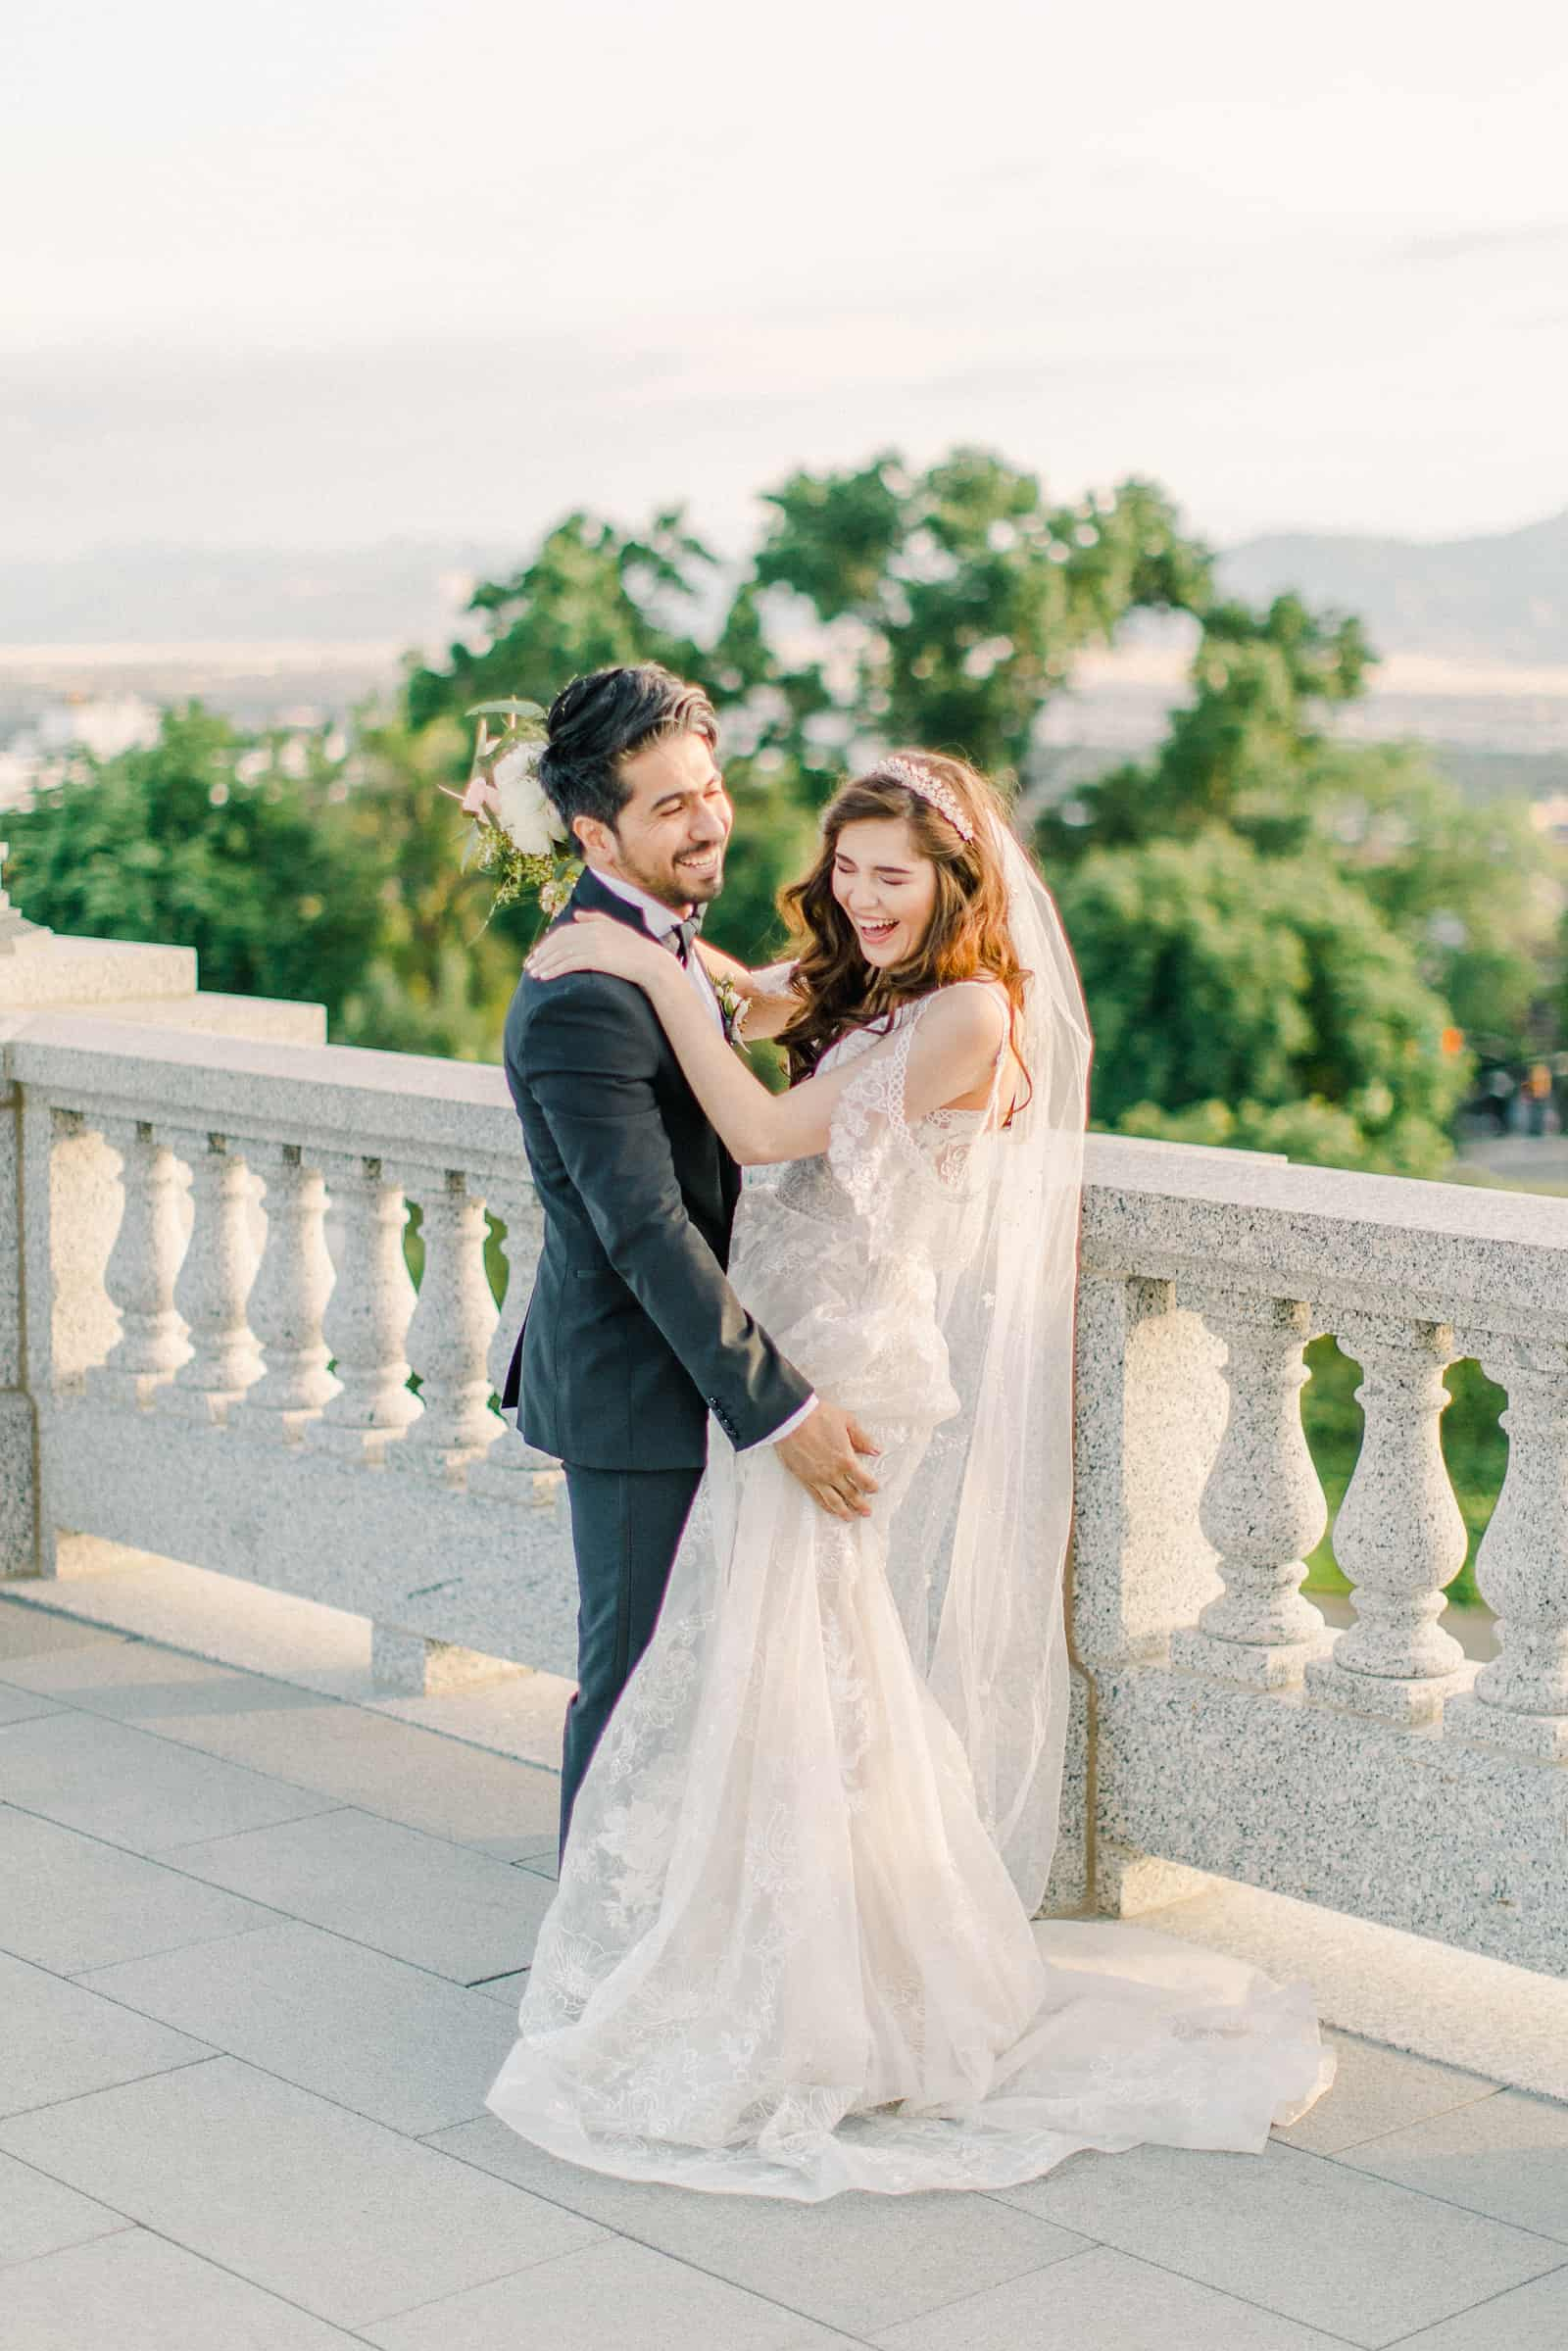 Palestinian Iranian Bride and Groom, Utah Wedding Photography at the Utah State Capitol sunset light